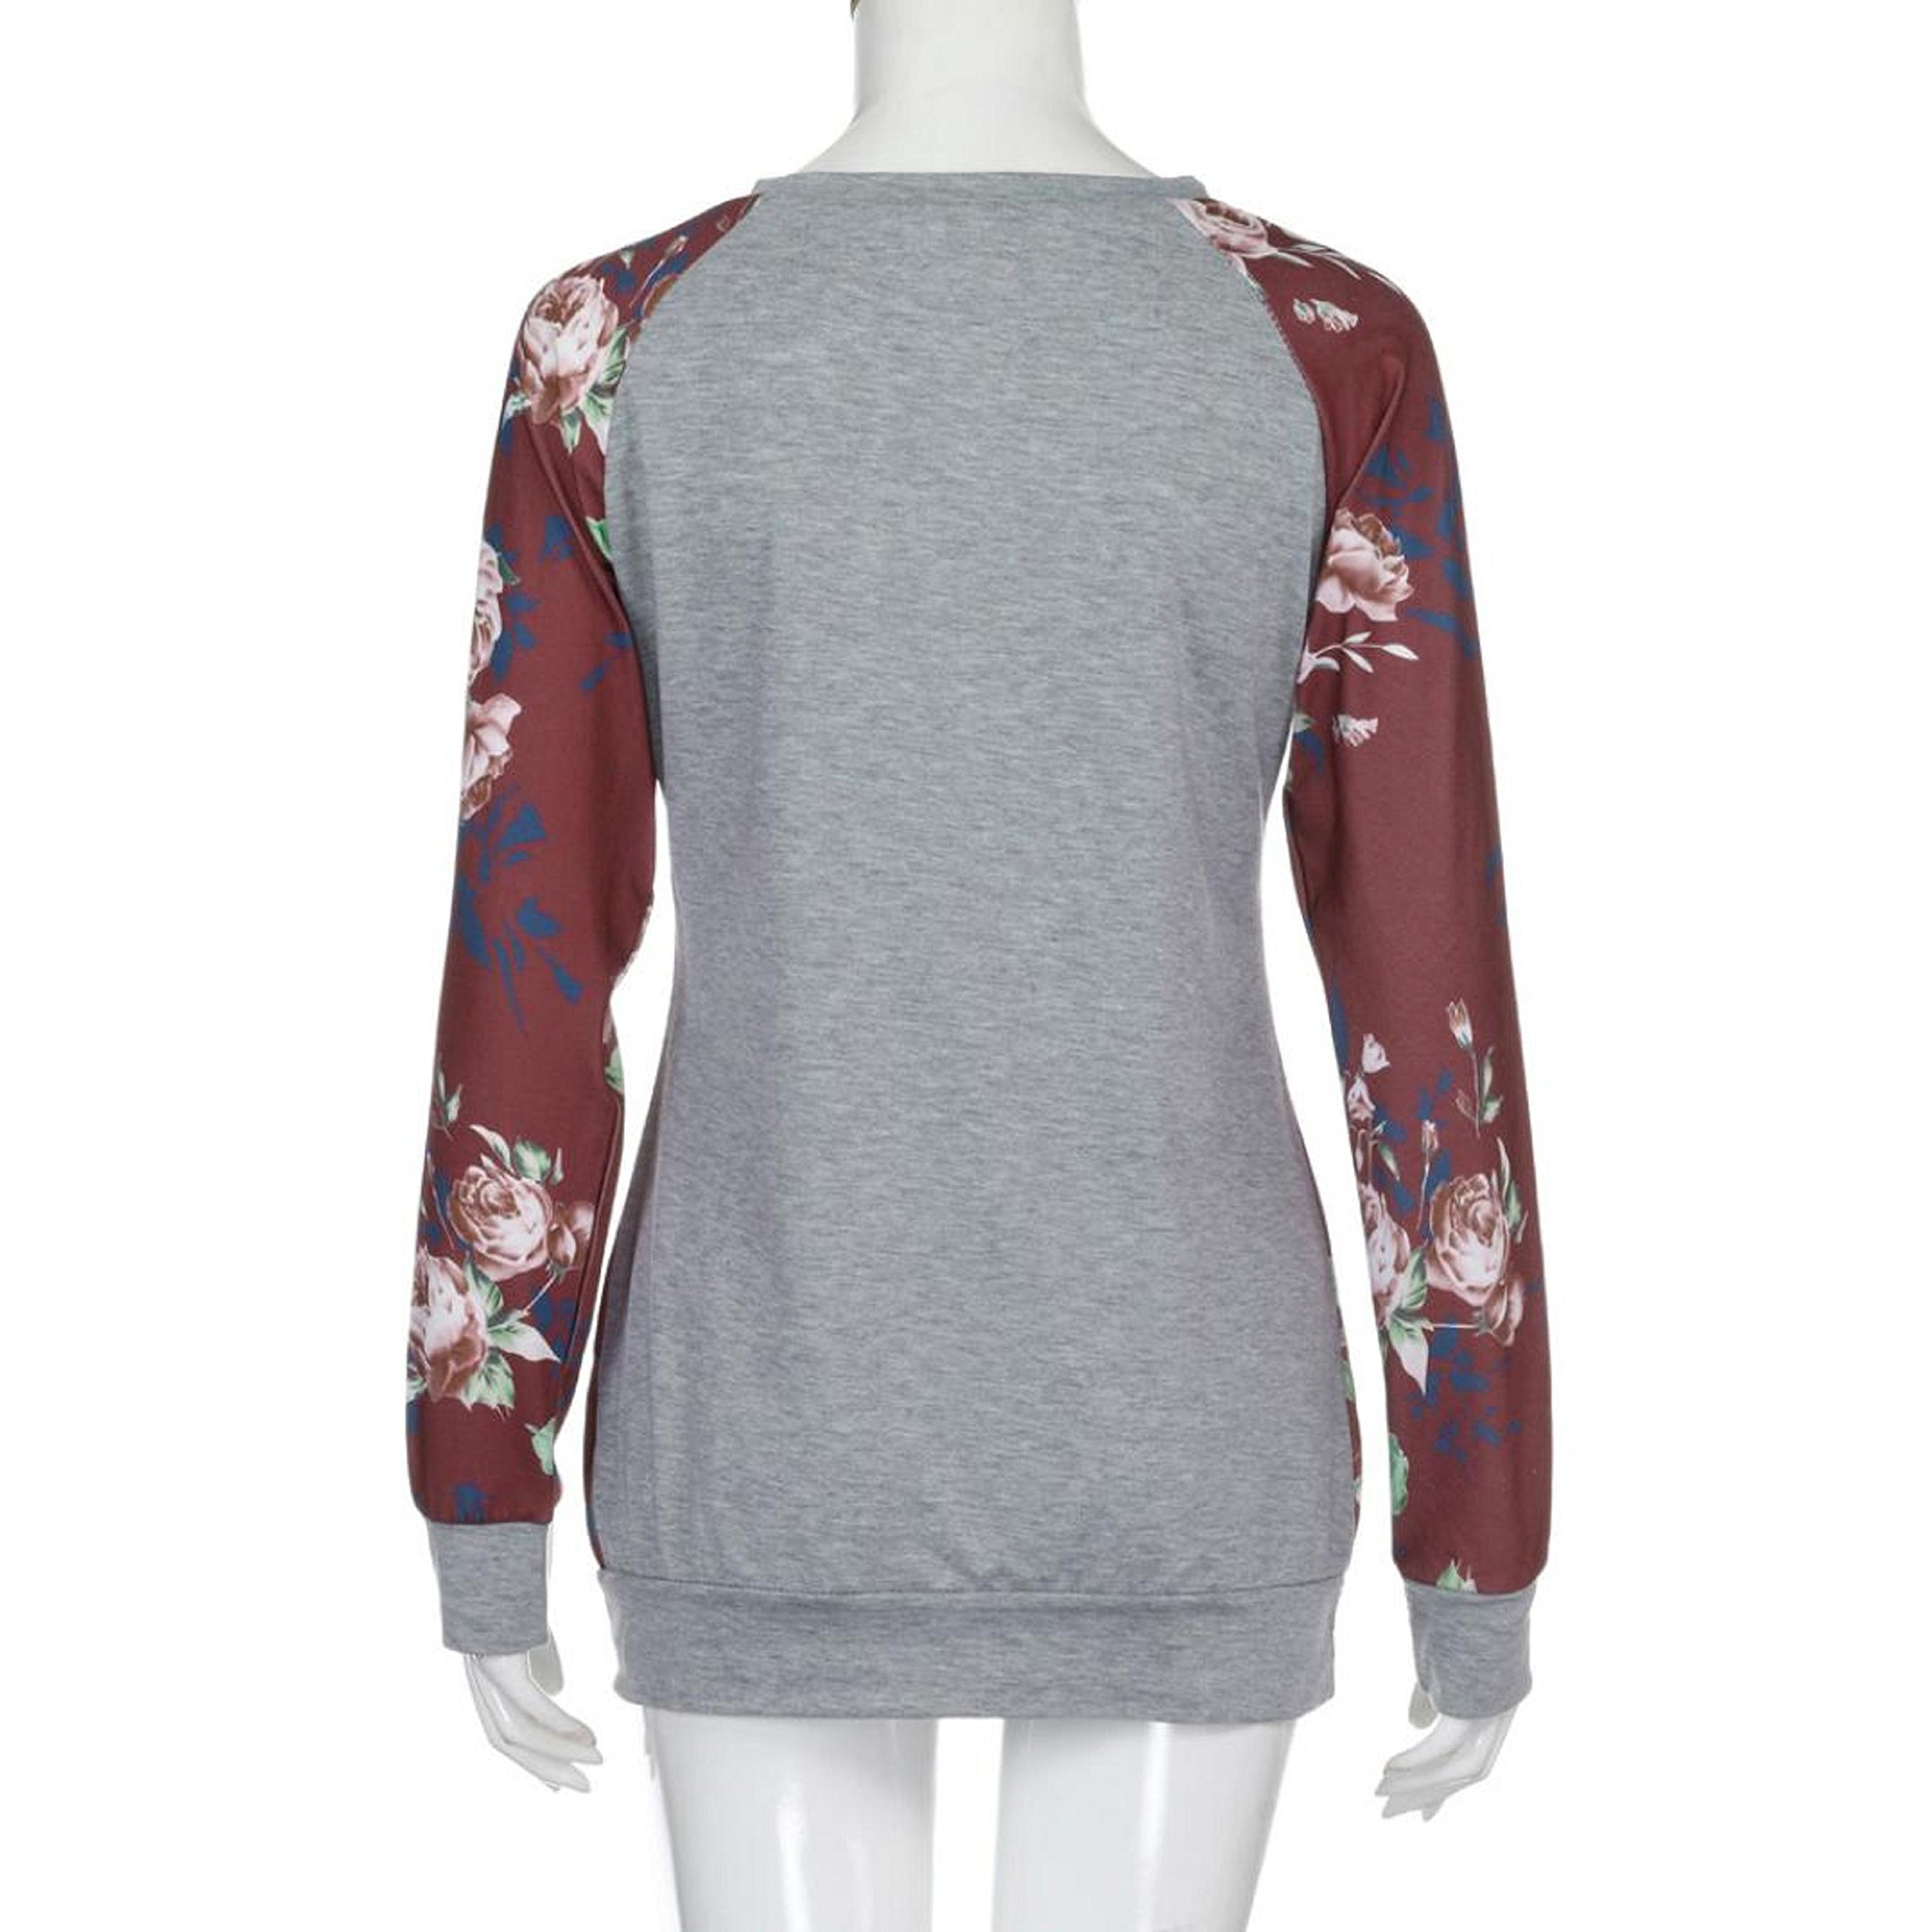 PPBUY Women Autumn Floral Printing Long Sleeve Shirt Casual Top Blouse (XL, Red) by PPBUY (Image #5)